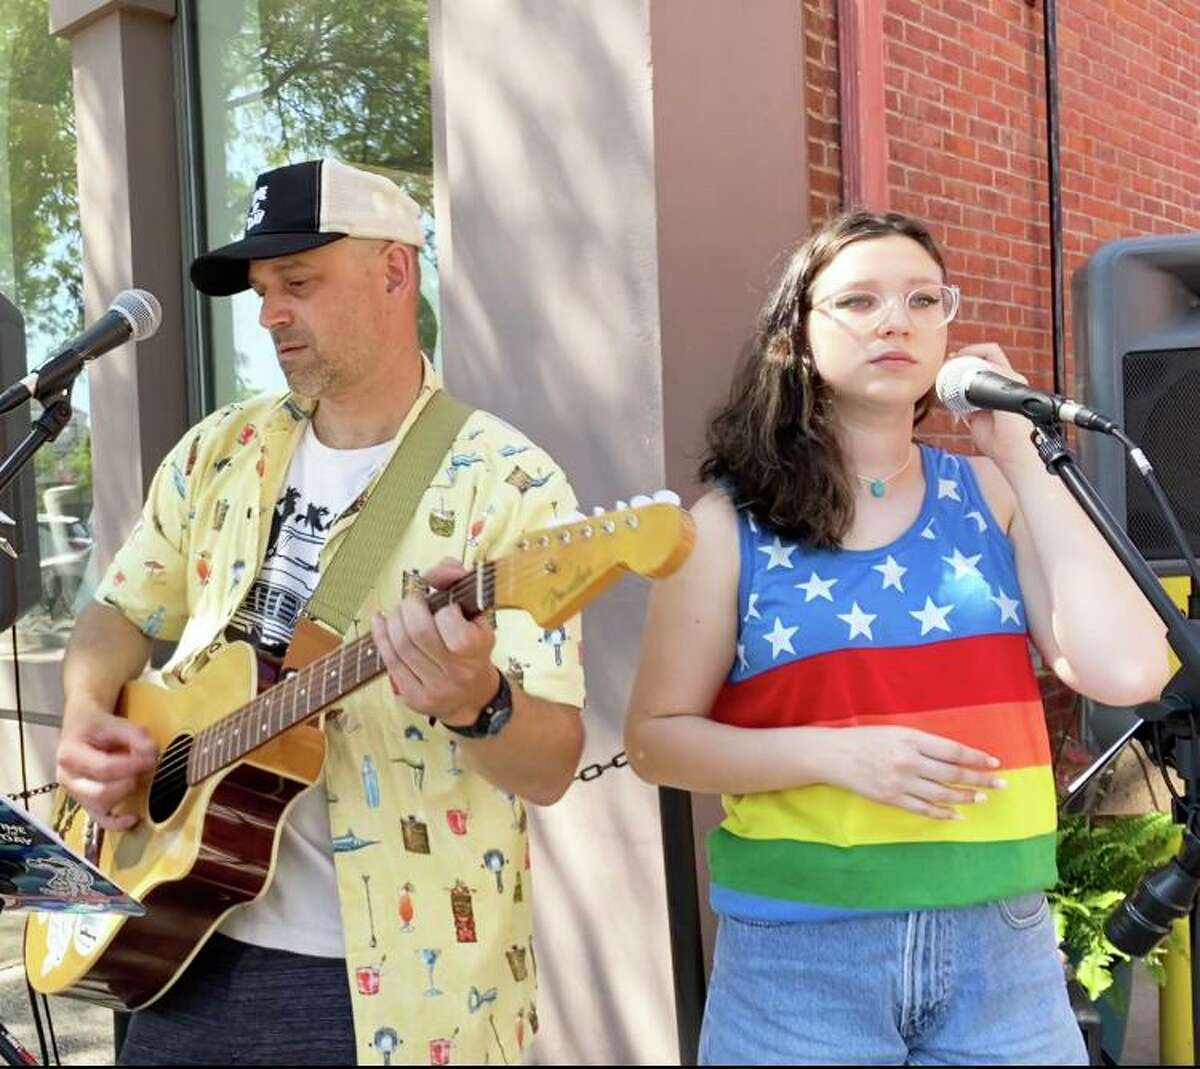 World Music Day in Middletown will feature a multitude of acts, such as Time of Day Acoustic with Dave (left) and his daughter Georgie TenEyck (right) and others, including Corey Tribz, up-and-coming guitarist Greyson Charles, Jenavieve Hawks, Amanda Brite, Wiberi Jordan, and Cessa and the Zach, a brother and sister duo. They will be stationed at Cinder + Salt on Main Street from 6 to 8 p.m.